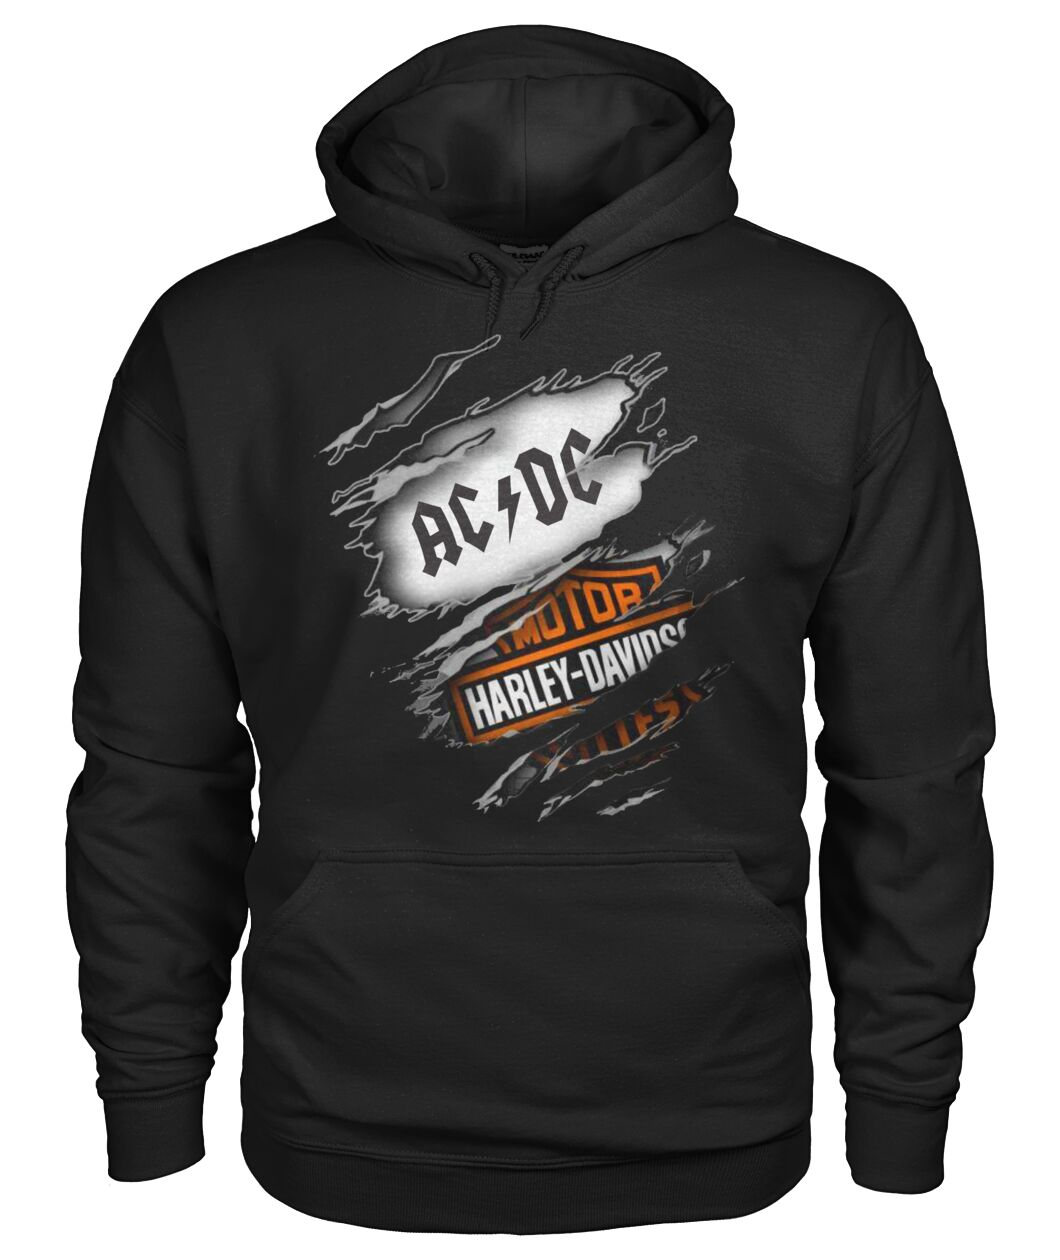 harley-davidson motorcycles and acdc rock band hoodie